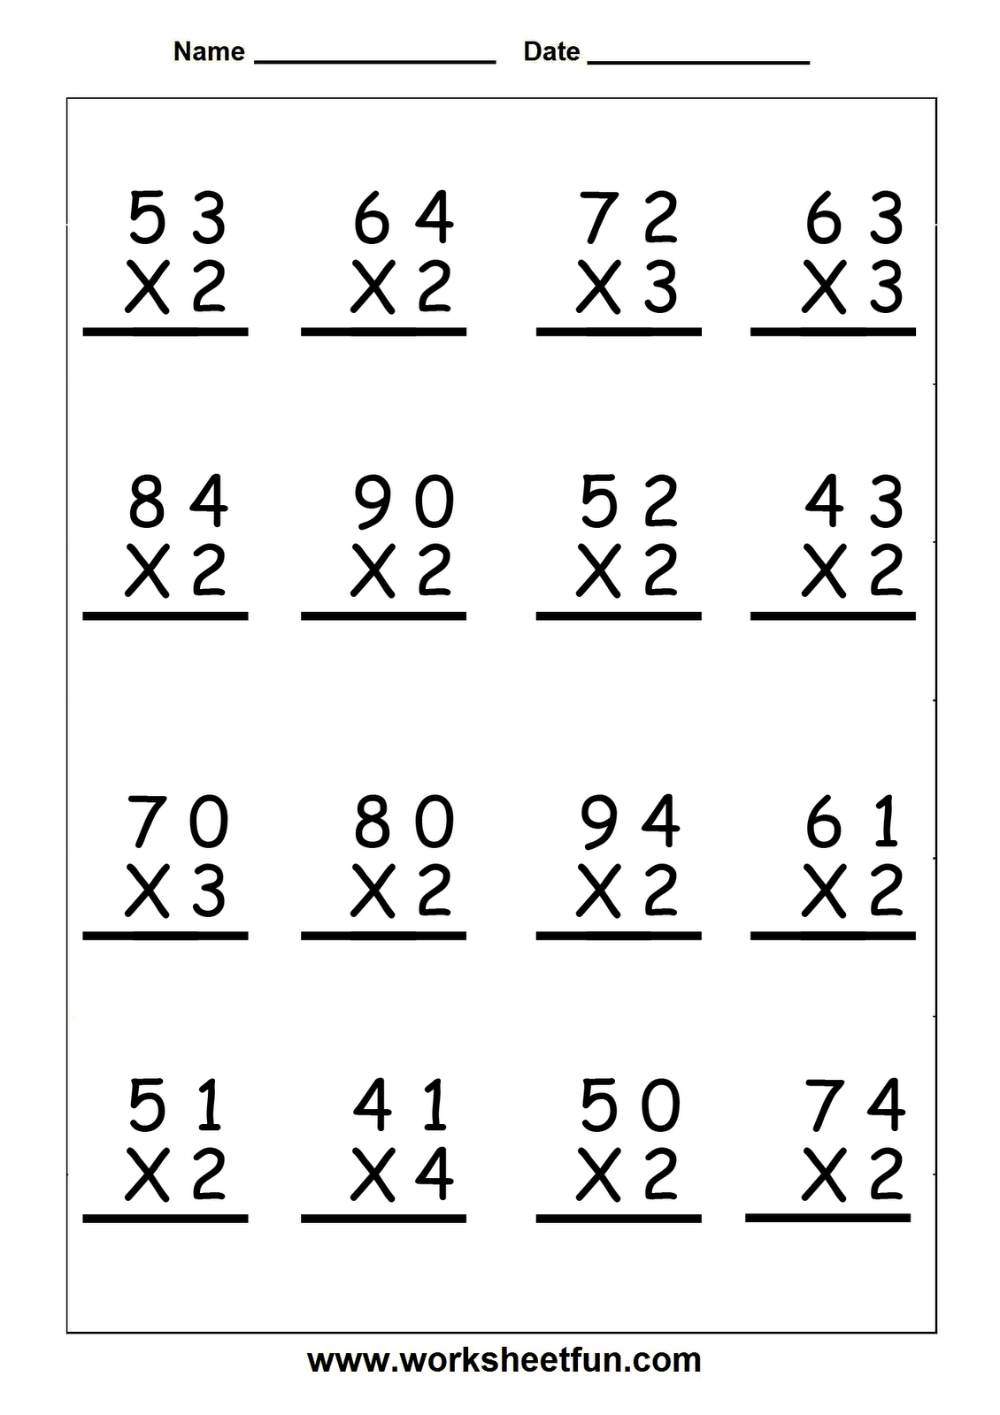 hight resolution of 5 th grade math coloring worksheets - Google Search in 2020   Multiplication  worksheets